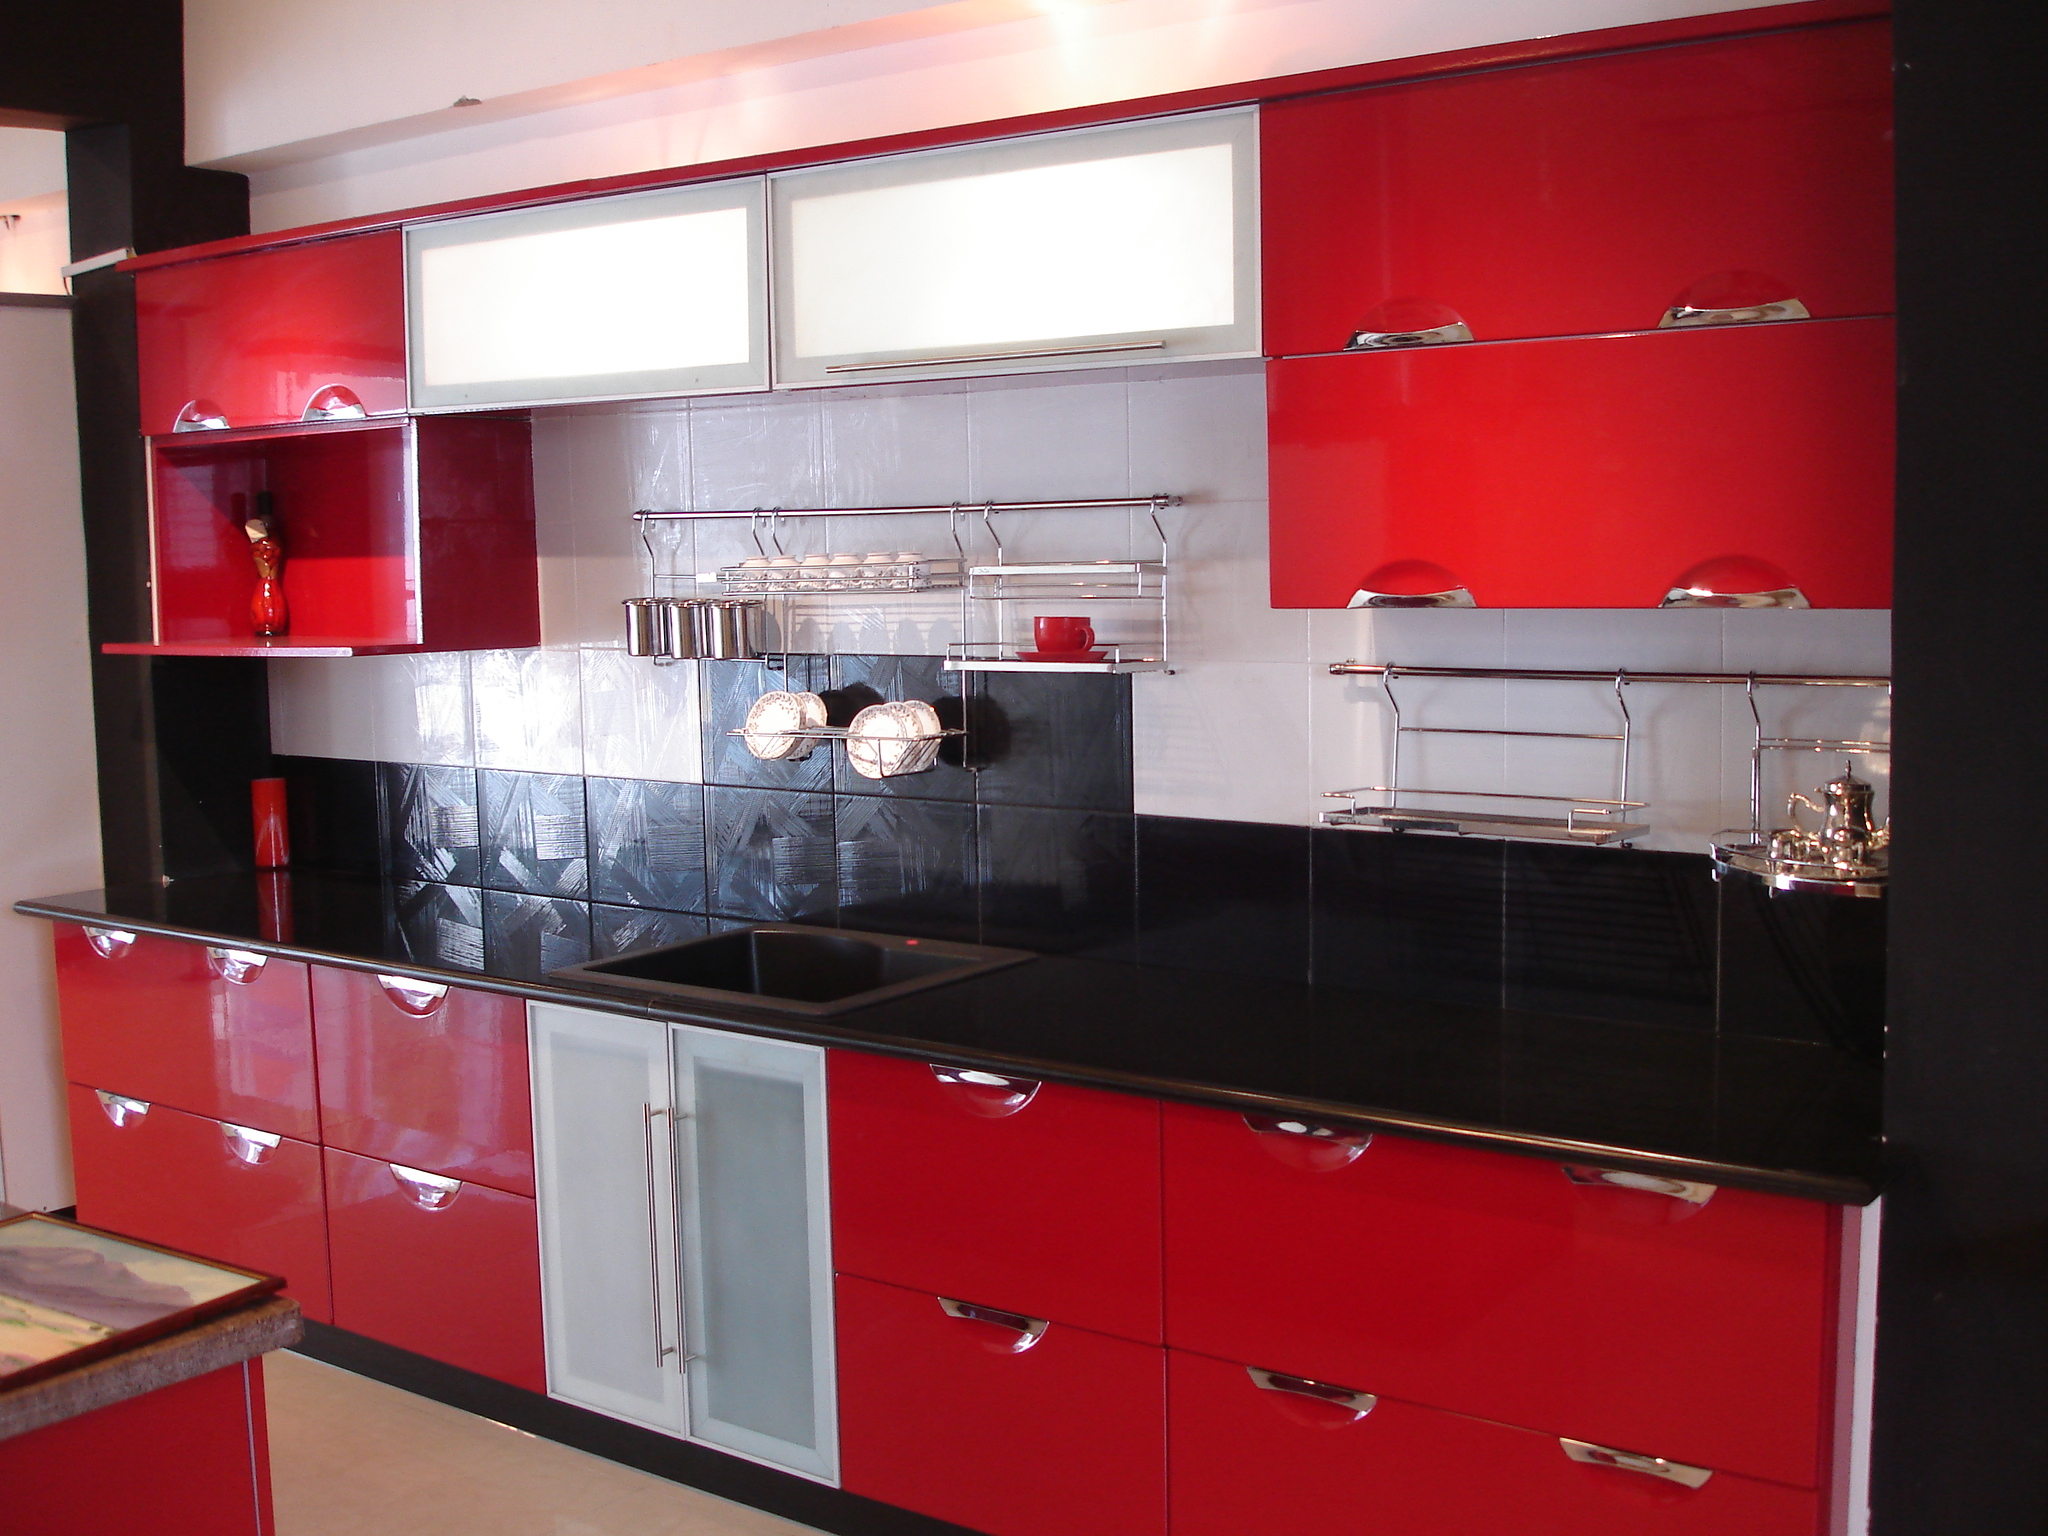 Modern Indian Red Kitchen Cabinets (Image 5 of 10)